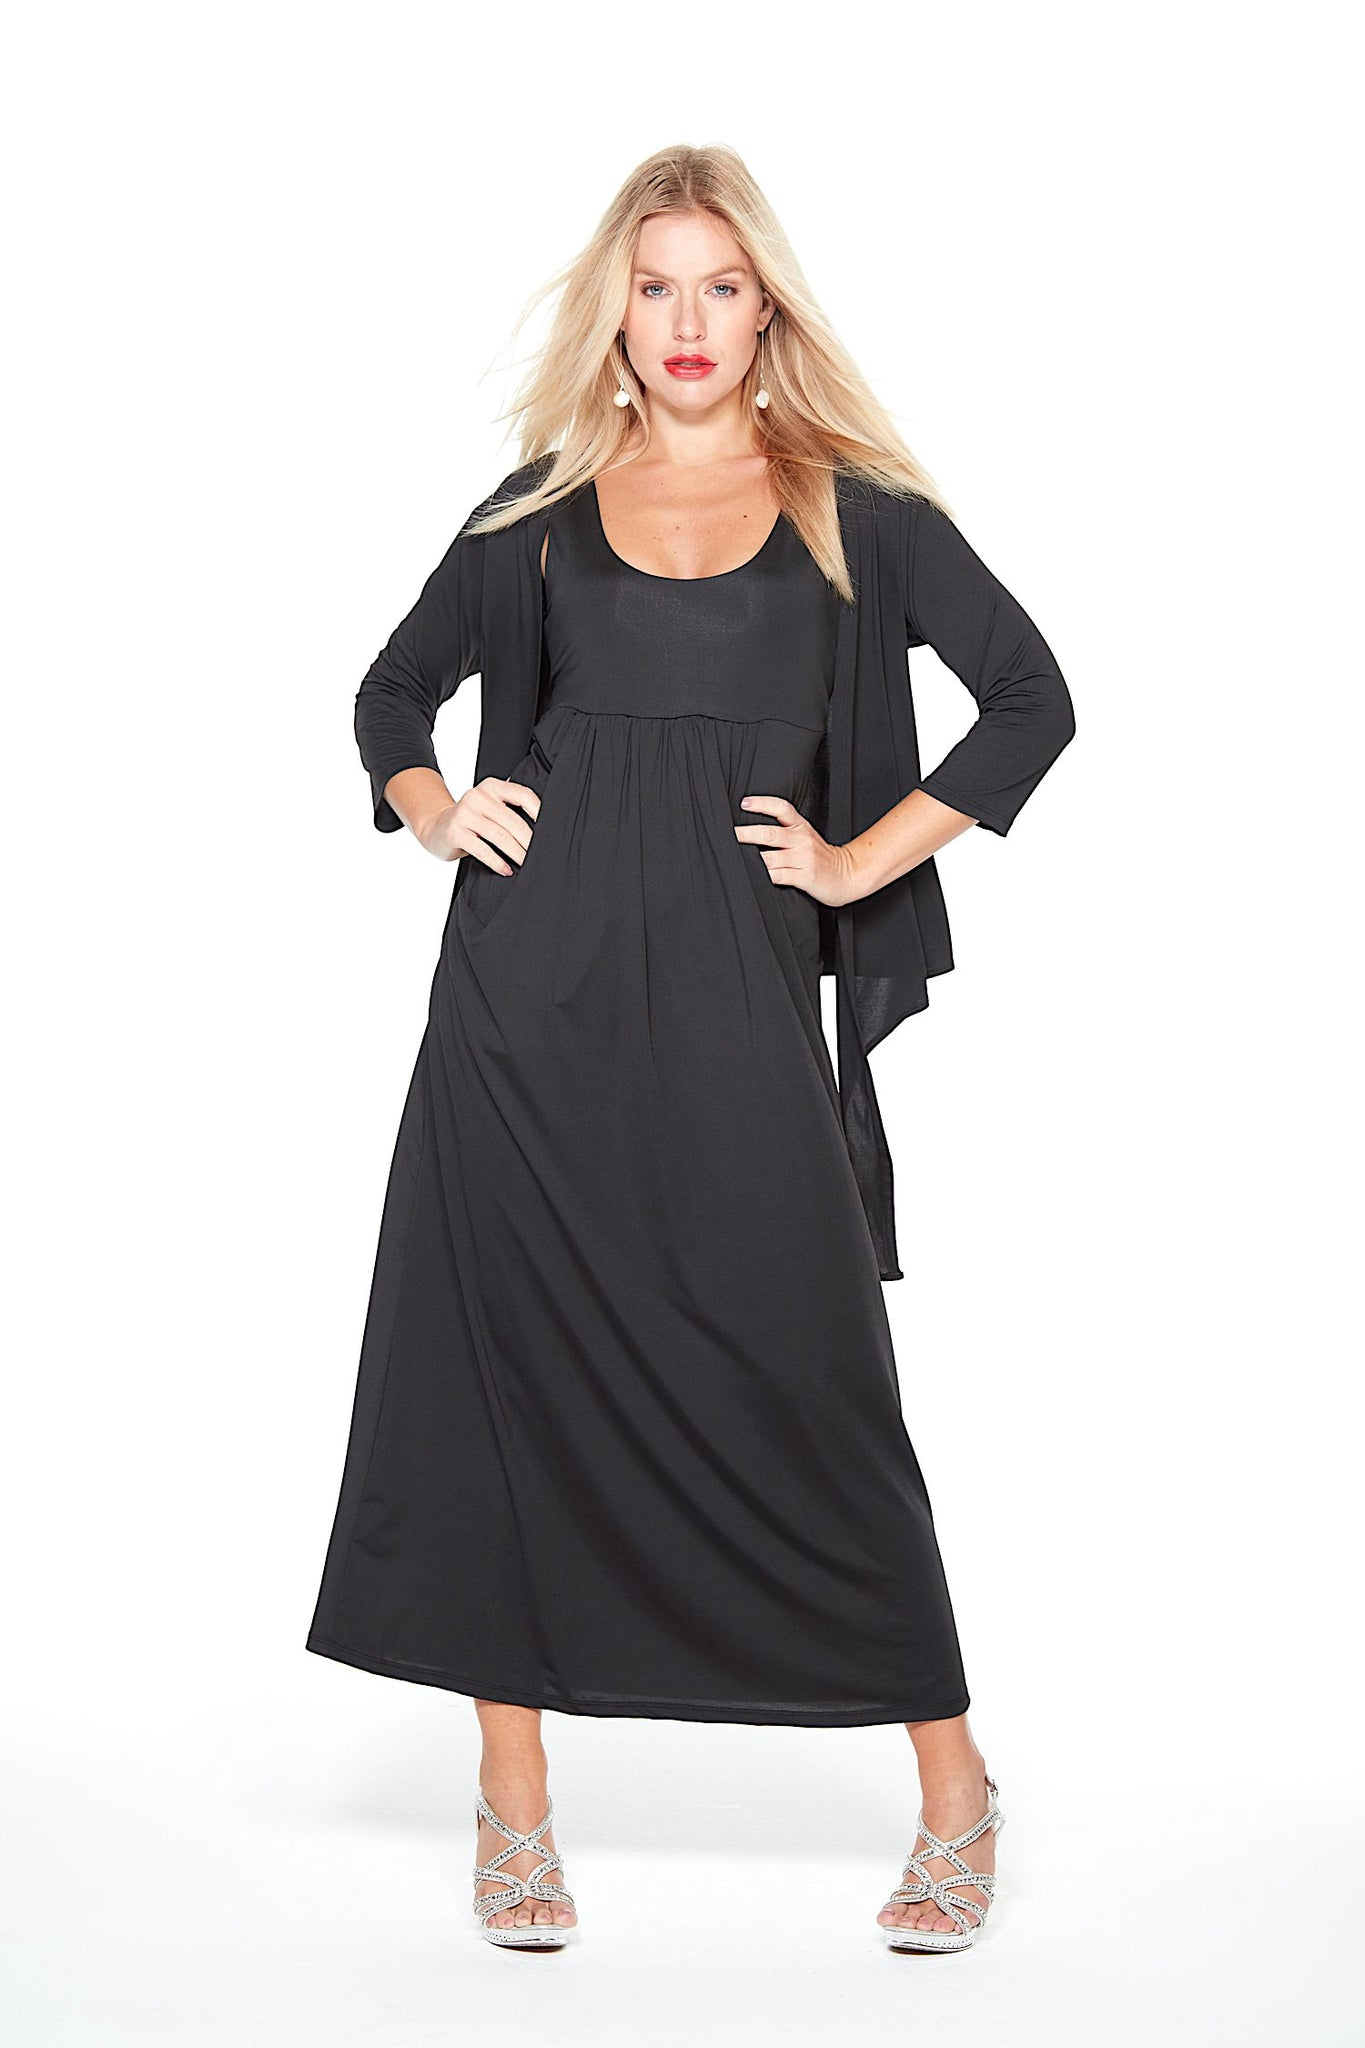 Black Anytime Dress Audrey Long with Black Shrug